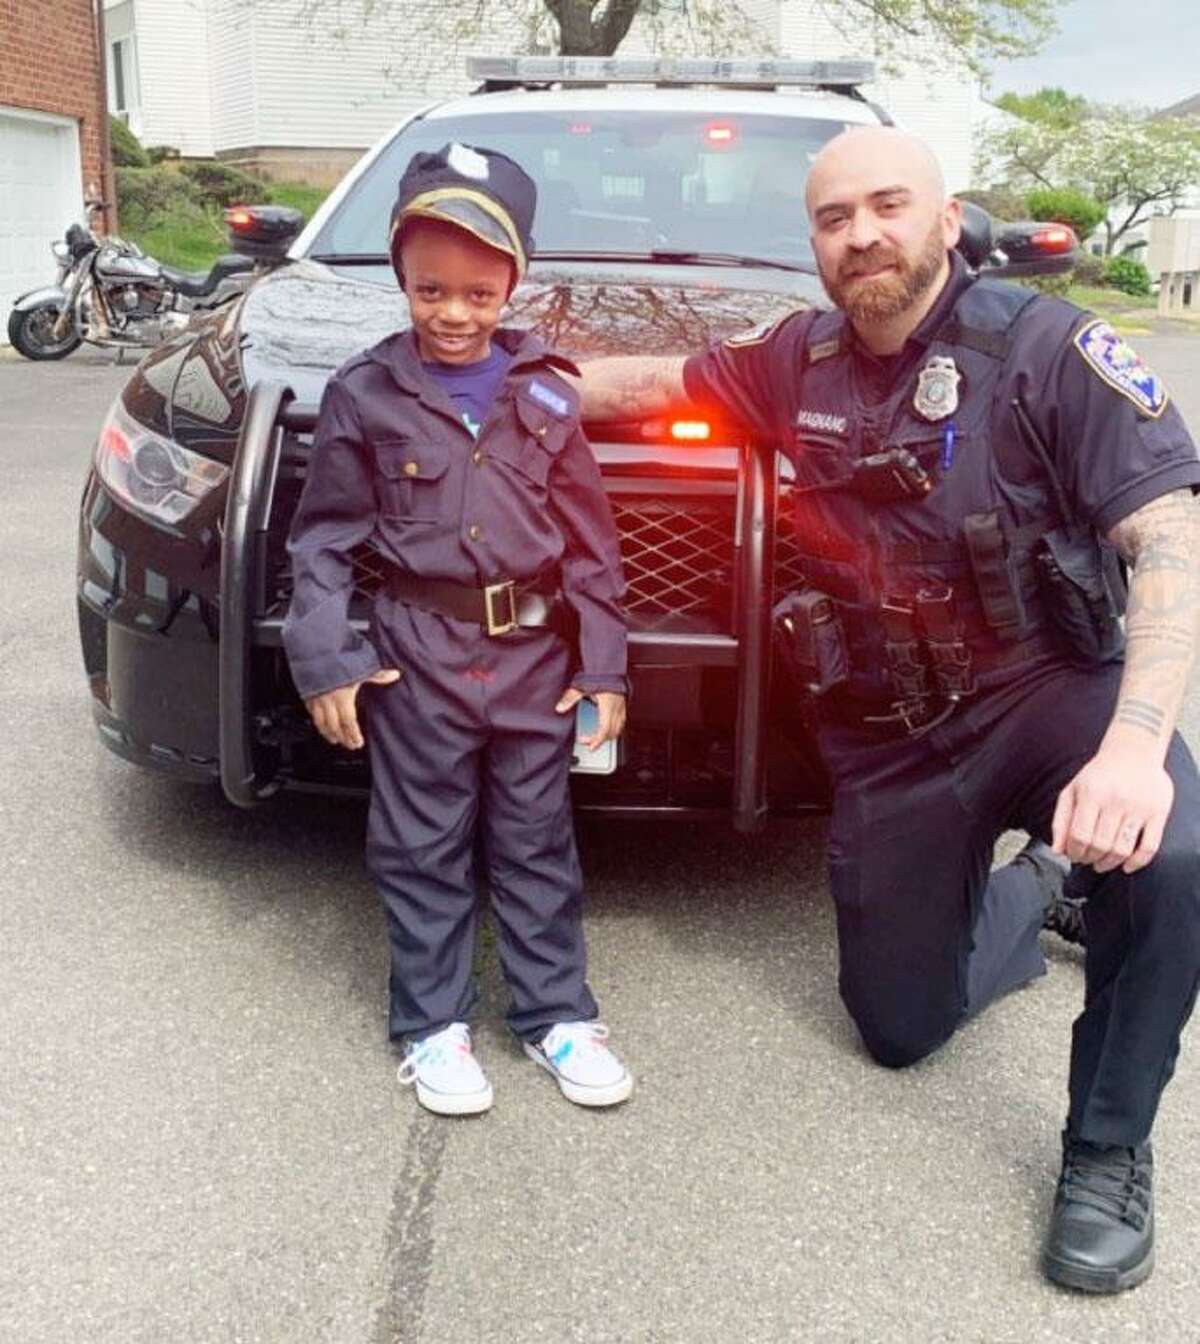 Middletown High School Resource Officer Emilio Magnano surprised 5-year-old Kanaan Boateng at his fifth birthday party recently, presenting him with a police costume from his mother. His mother, Kiarra Bennett, said Kanaan got into the cruiser mid-party and asked Magnano when they were going to work.